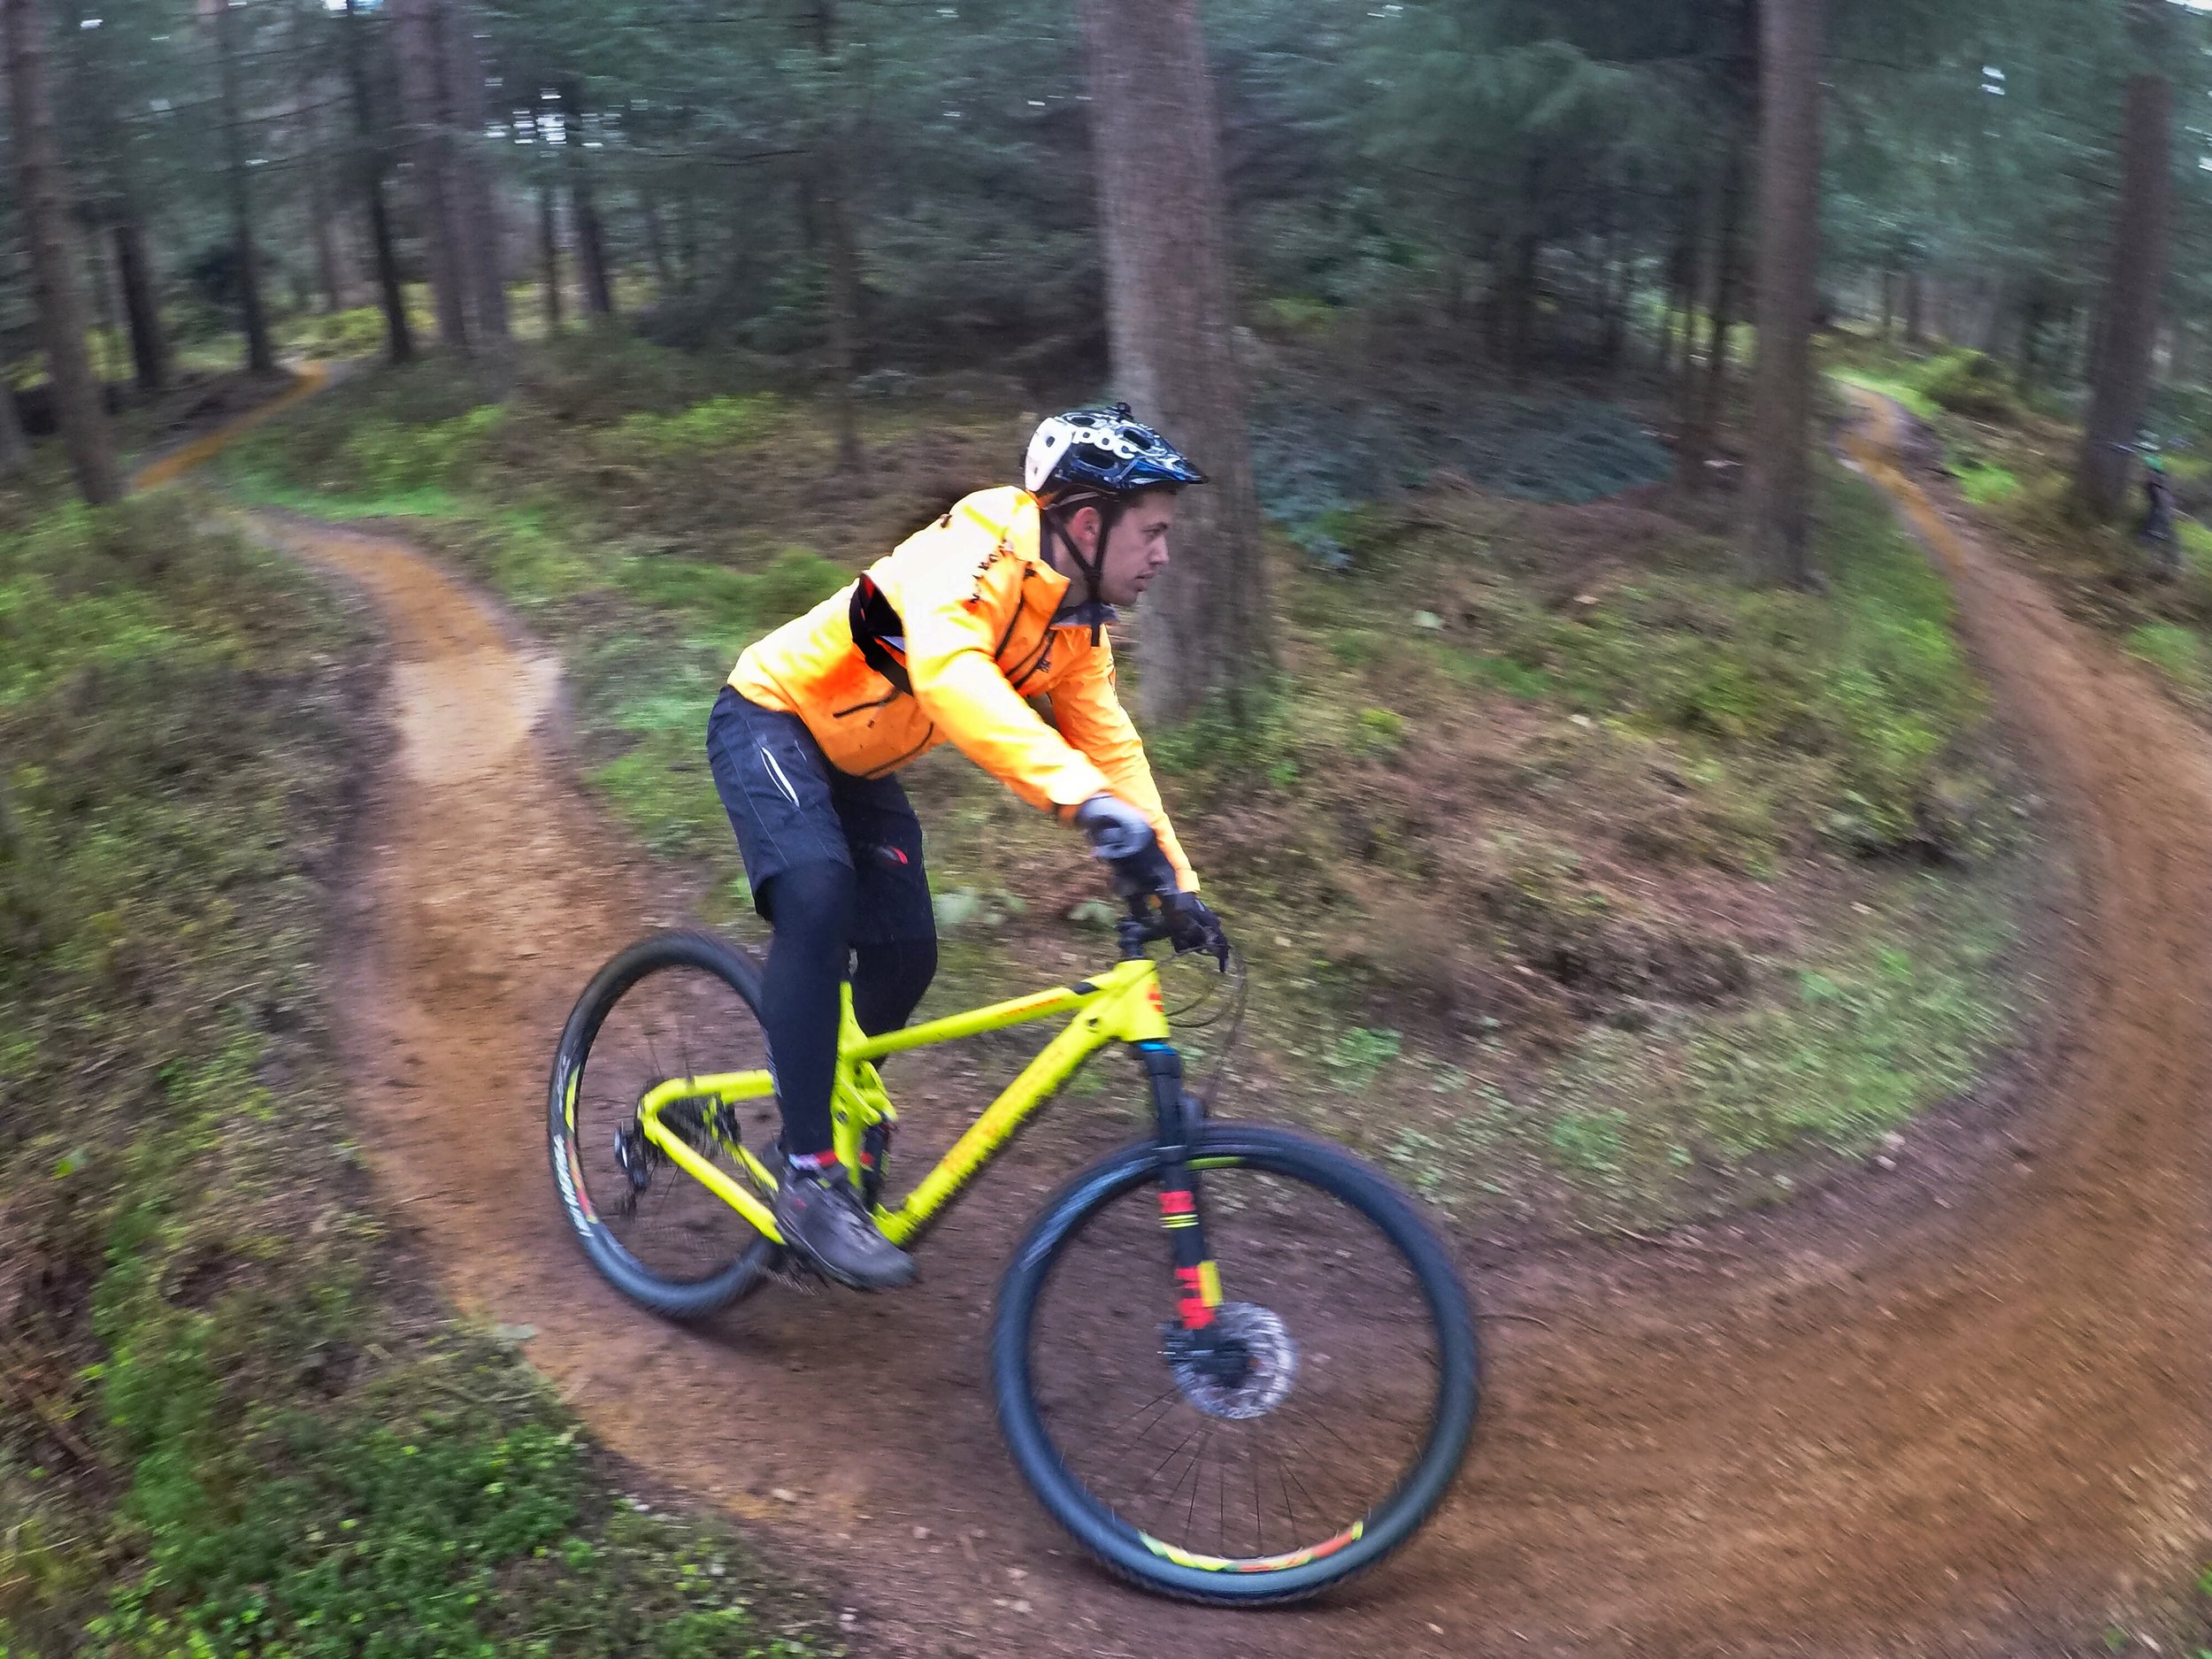 Carving the berm - pedals